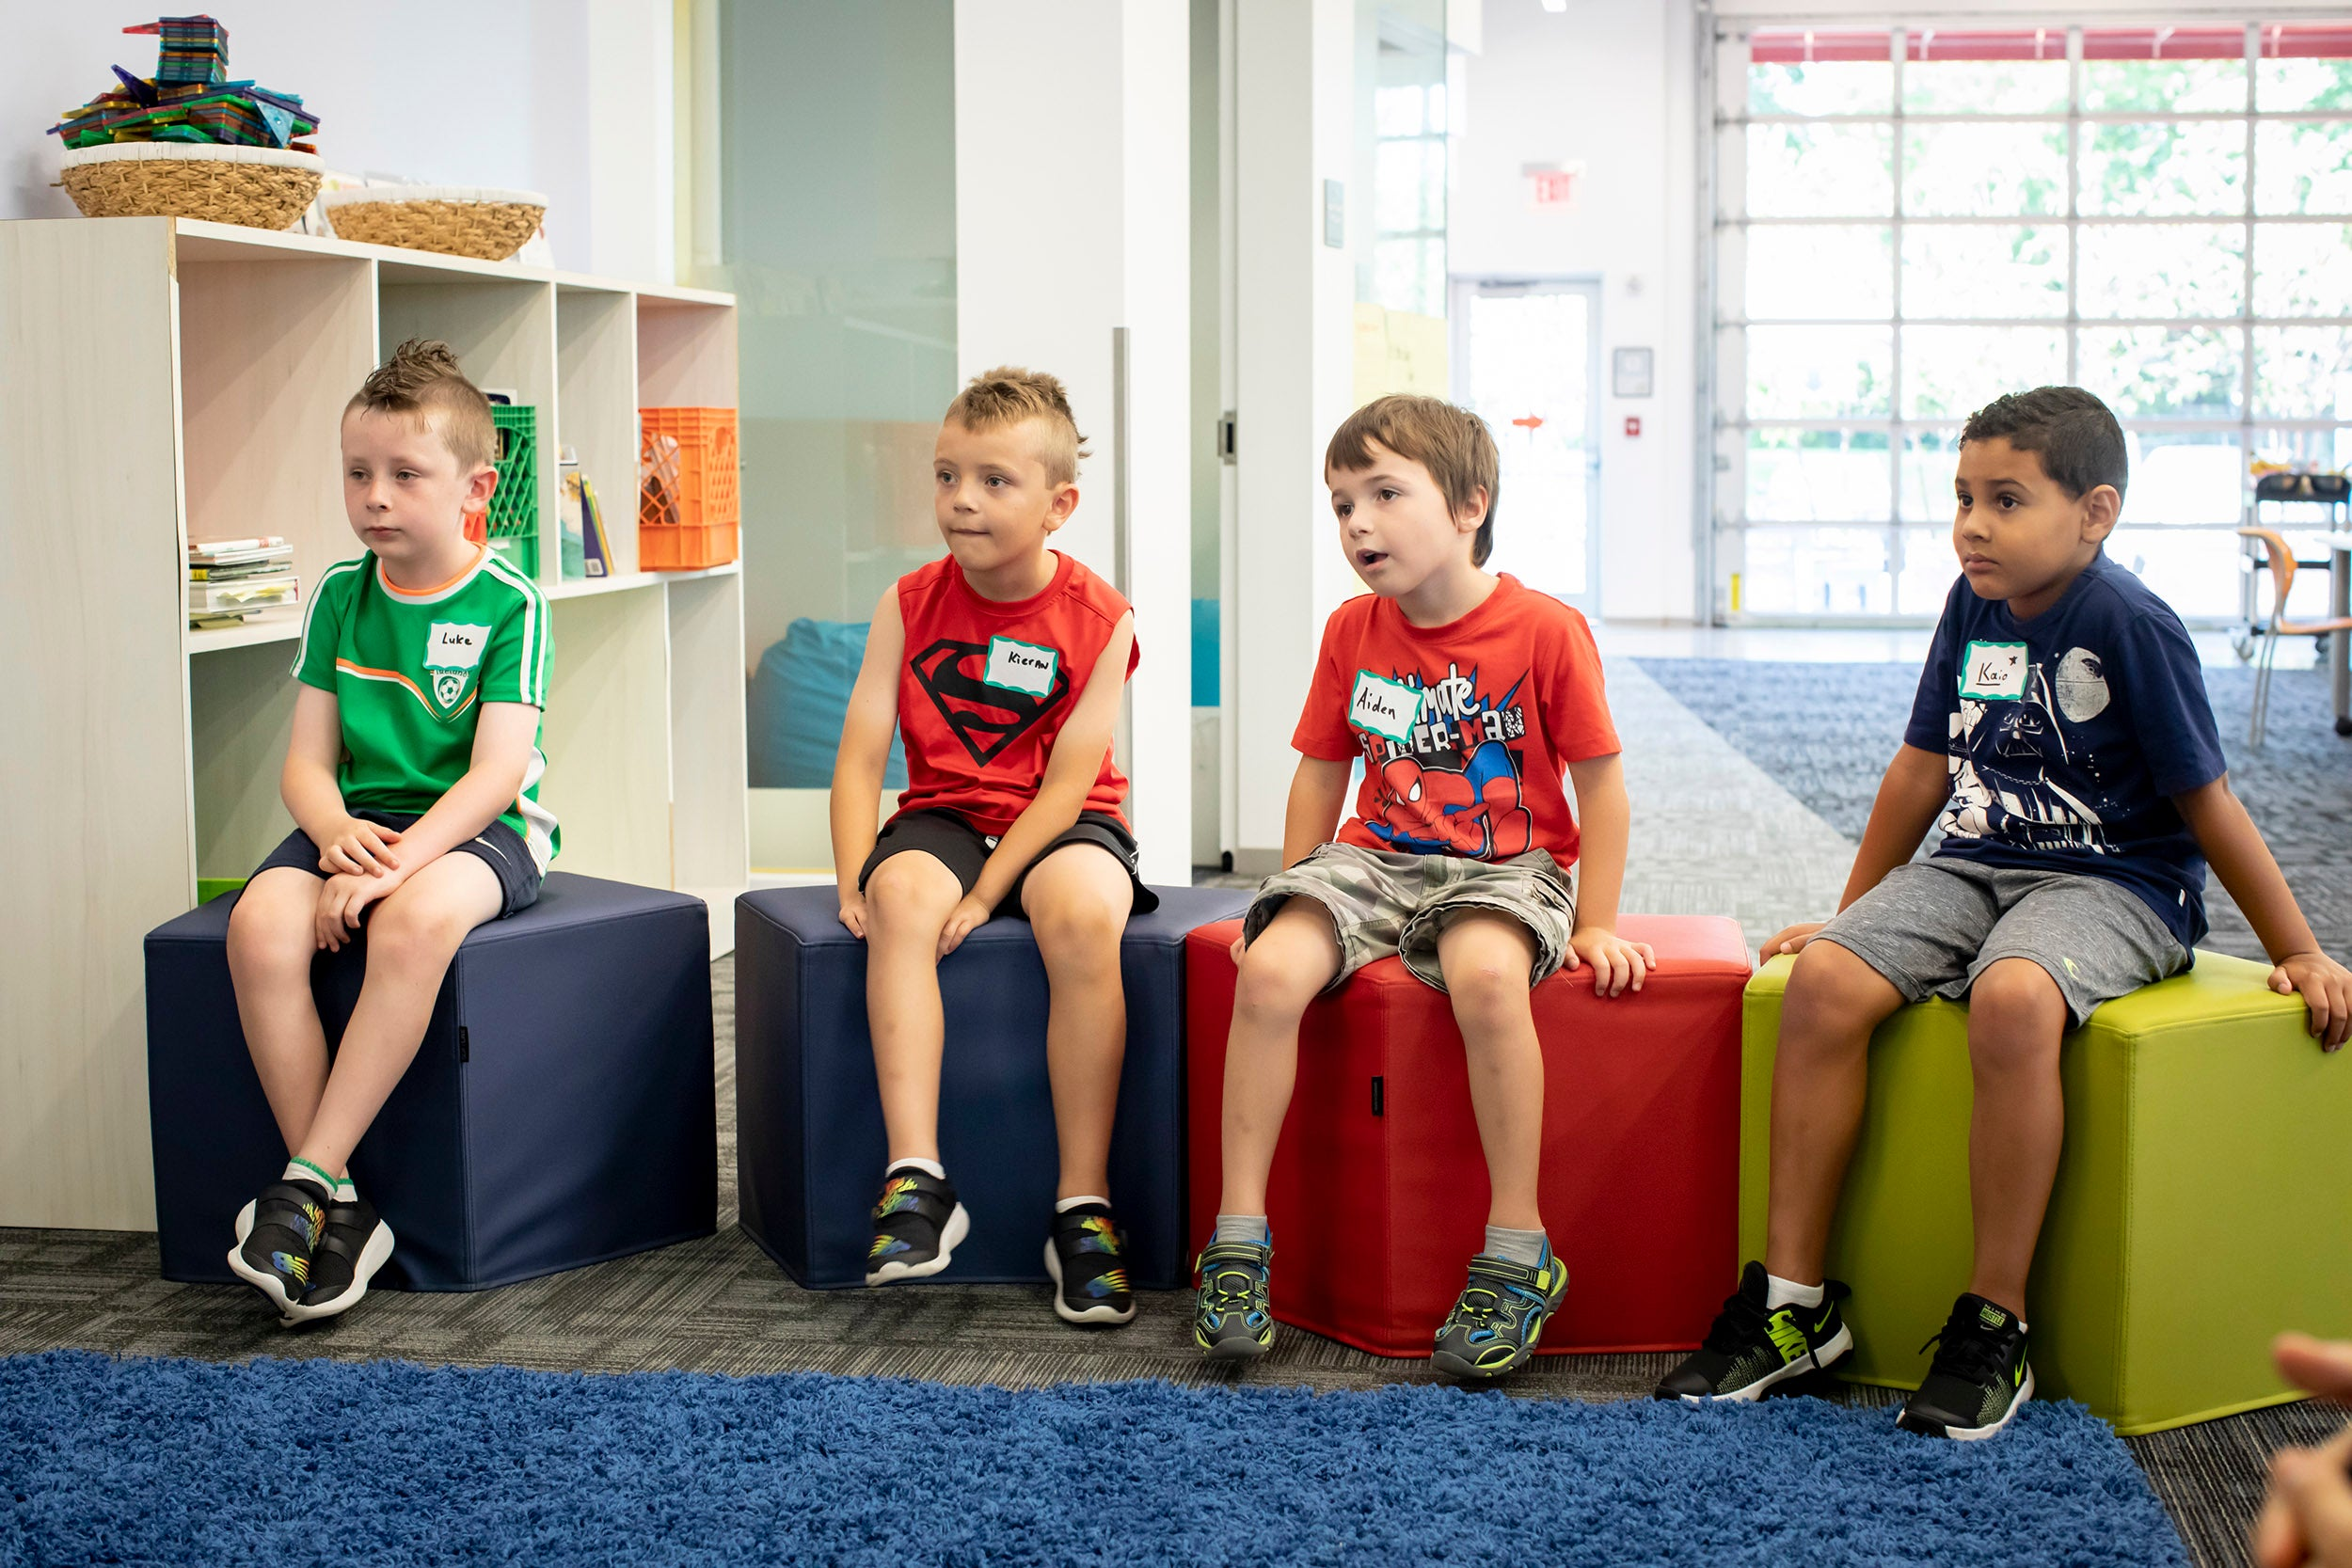 Luke Scanlon (from left), Kieran Bligh, Aiden Kiley, and Kaio Marques listen during poetry class.